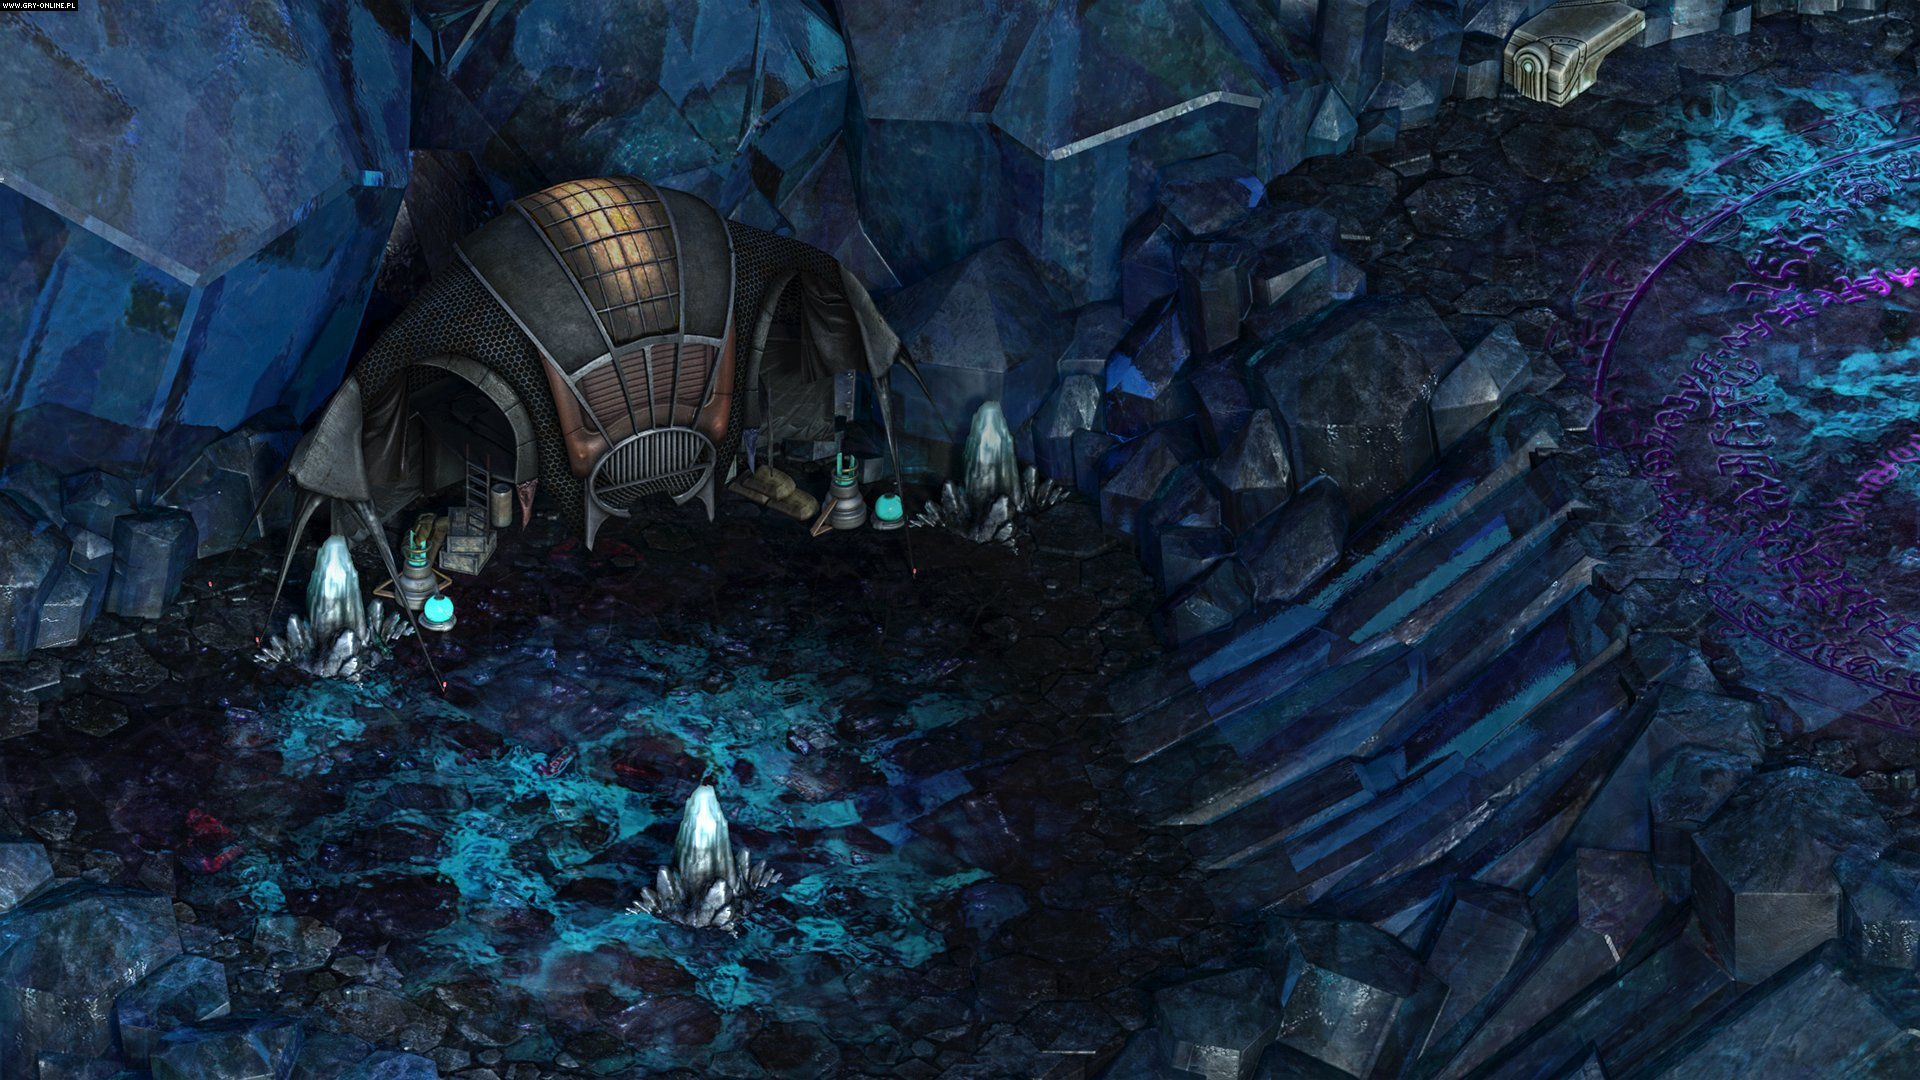 Torment: Tides of Numenera PC, PS4, XONE Games Image 22/28, inXile entertainment, Techland